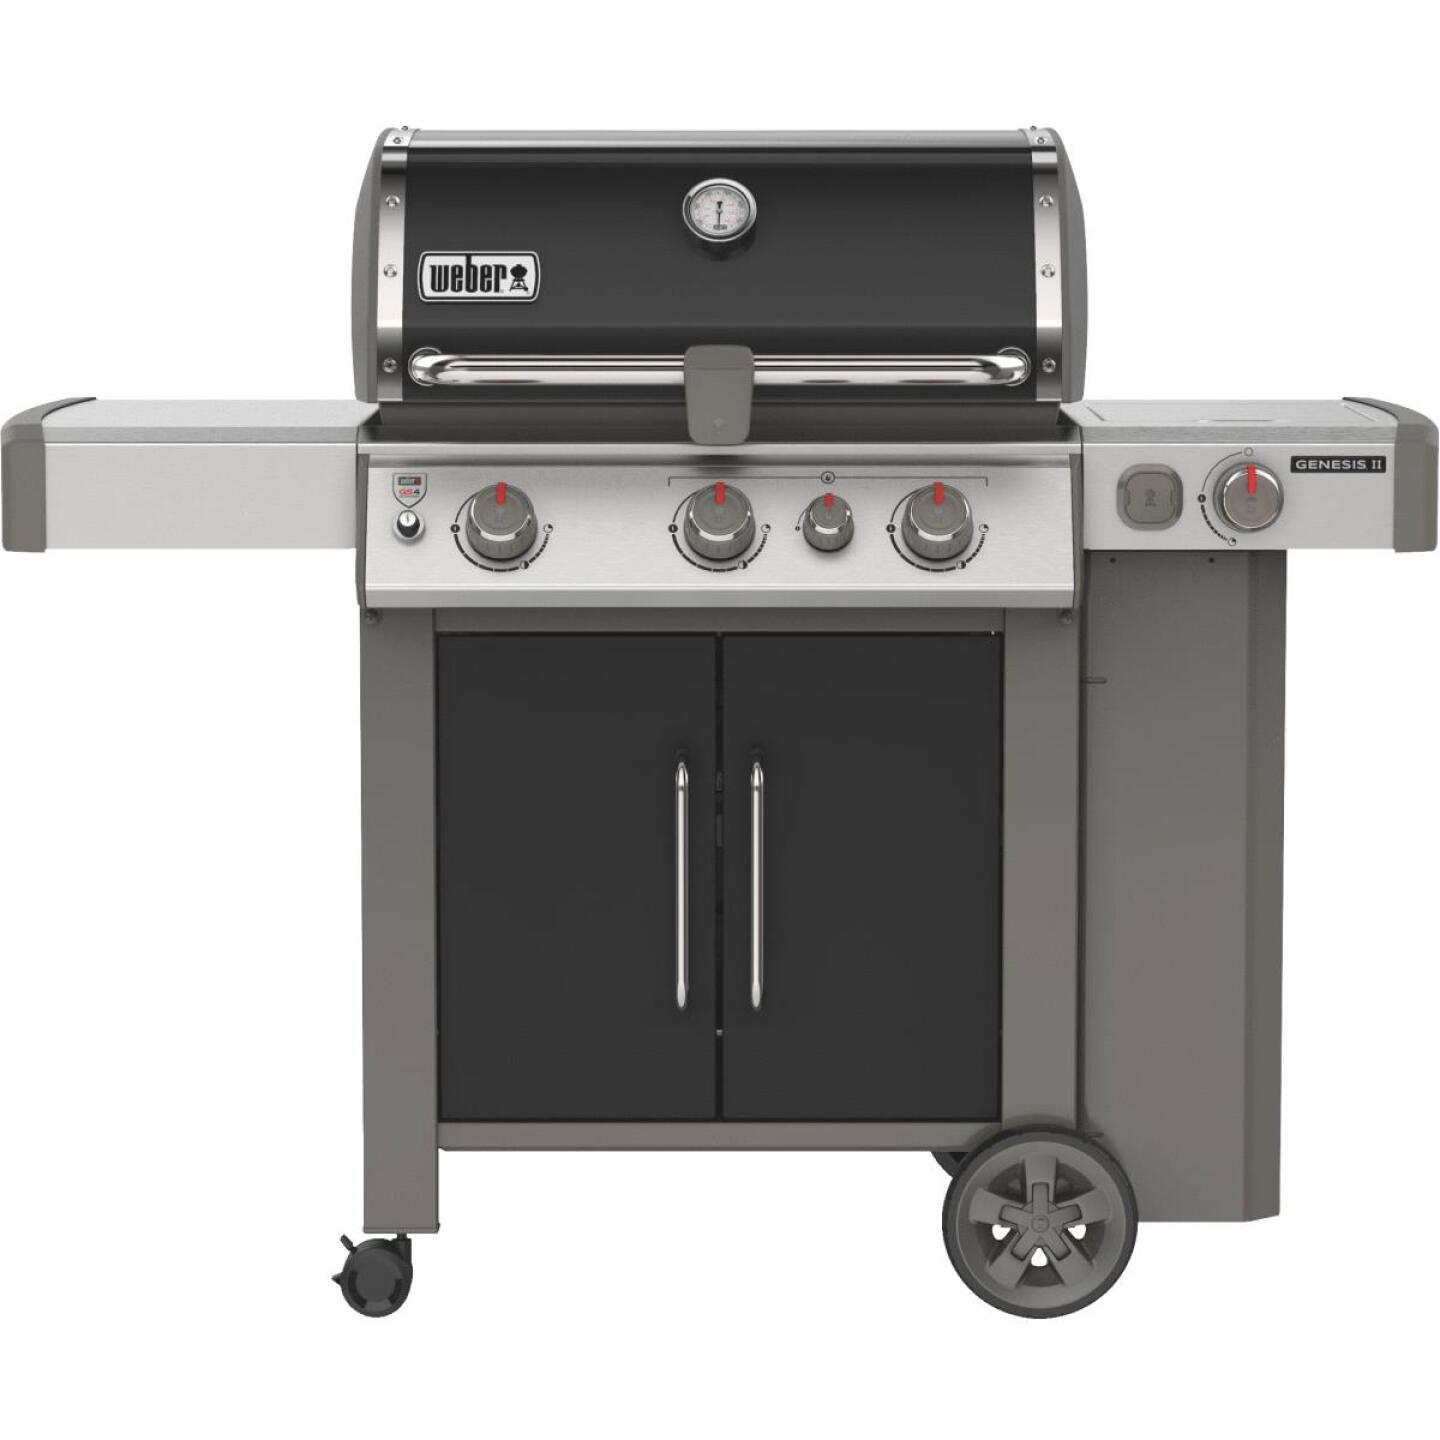 Weber Genesis II SE-335 3-Burner Black 39,000 BTU LP Gas Grill with 12,000 BTU Side -Burner Image 1